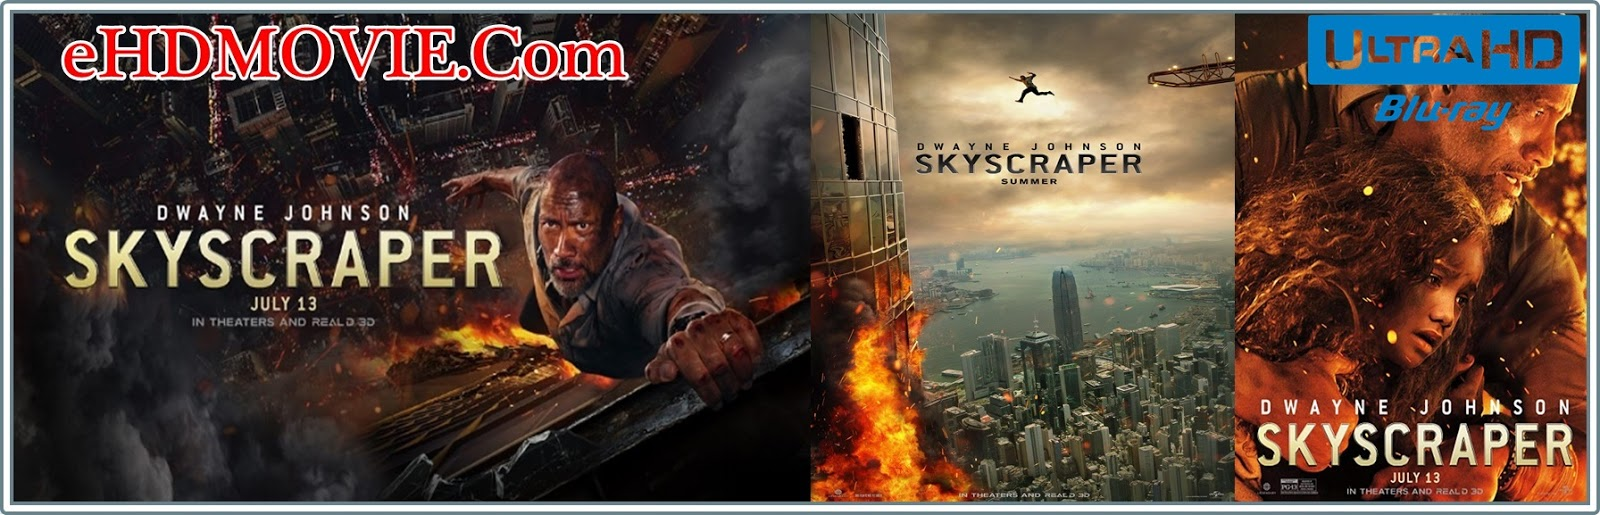 Skyscraper 2018 Full Movie Dual Audio [Hindi – English] 1080p - HEVC - 720p - 480p ORG BRRip 350MB - 500MB - 1GB - 2.2GB ESubs Free Download